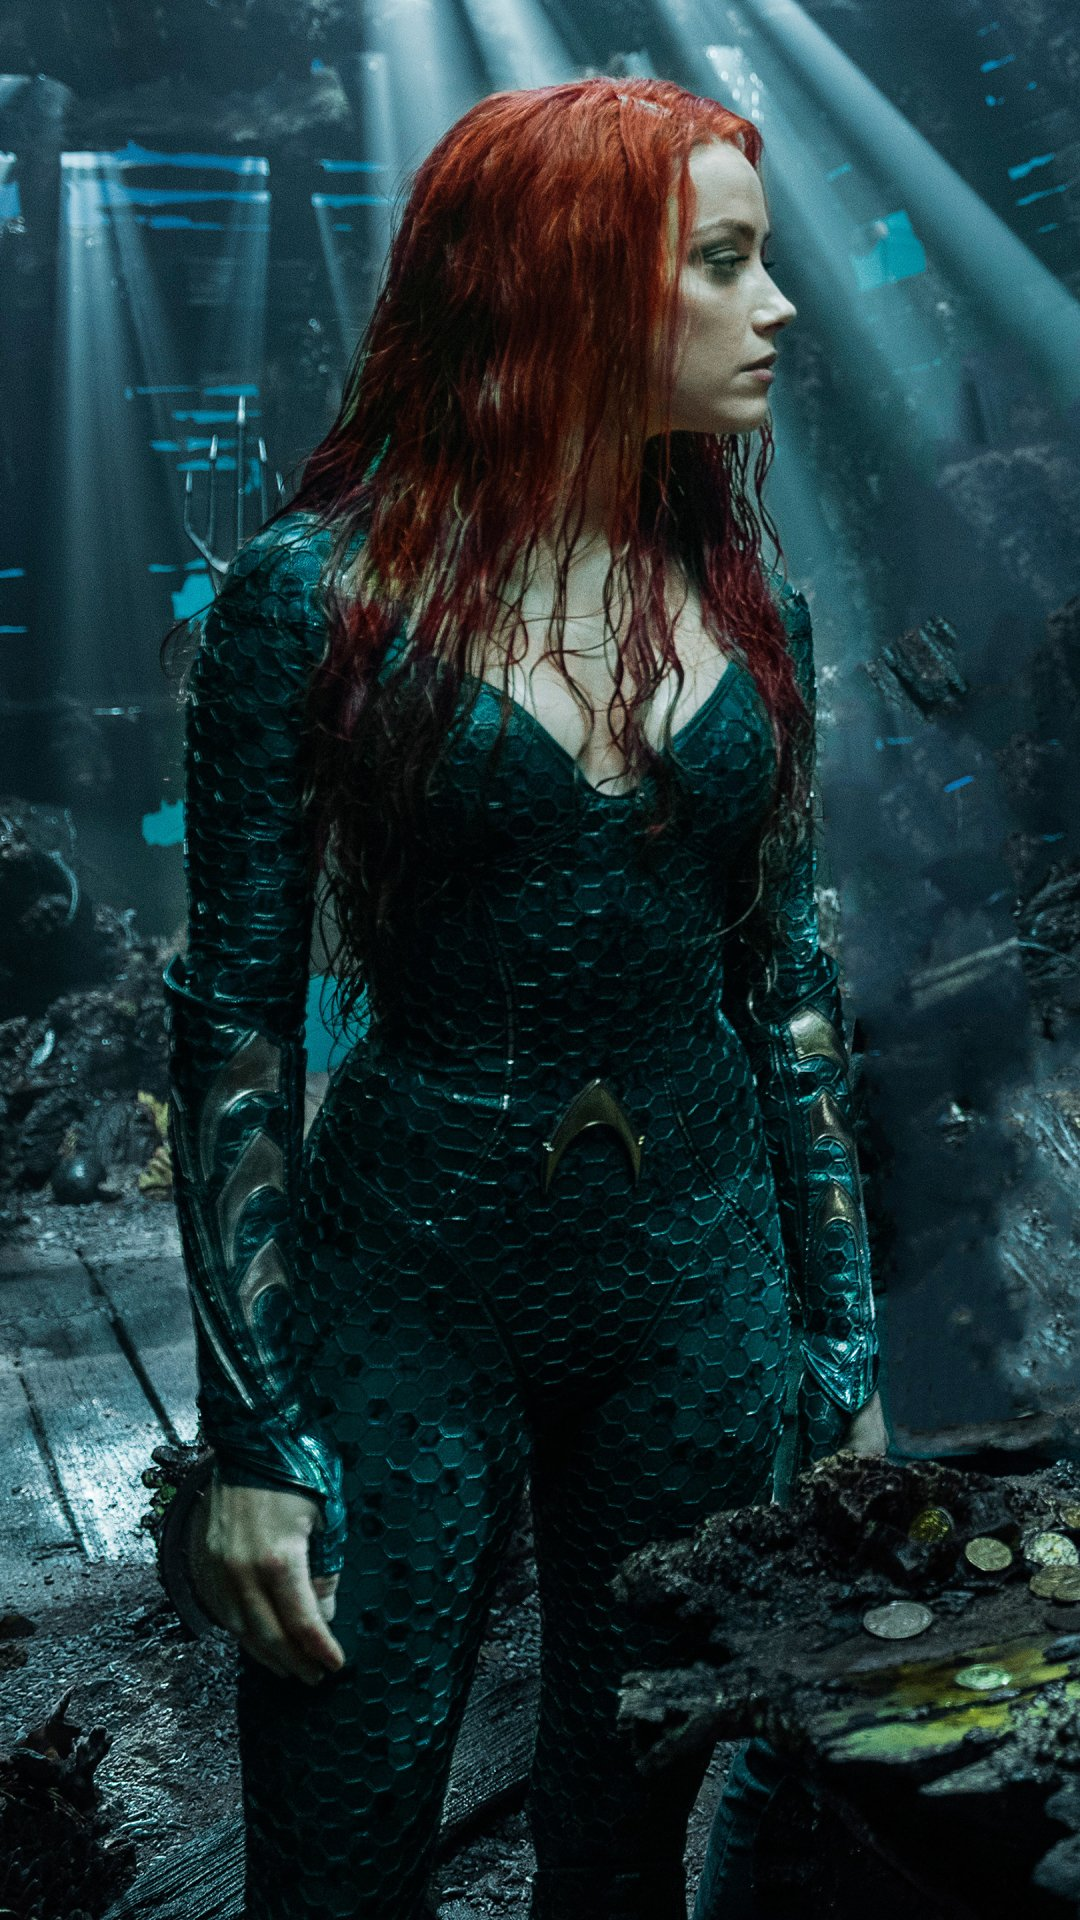 MovieAquaman 1080x1920 Wallpaper ID 748271   Mobile Abyss 1080x1920